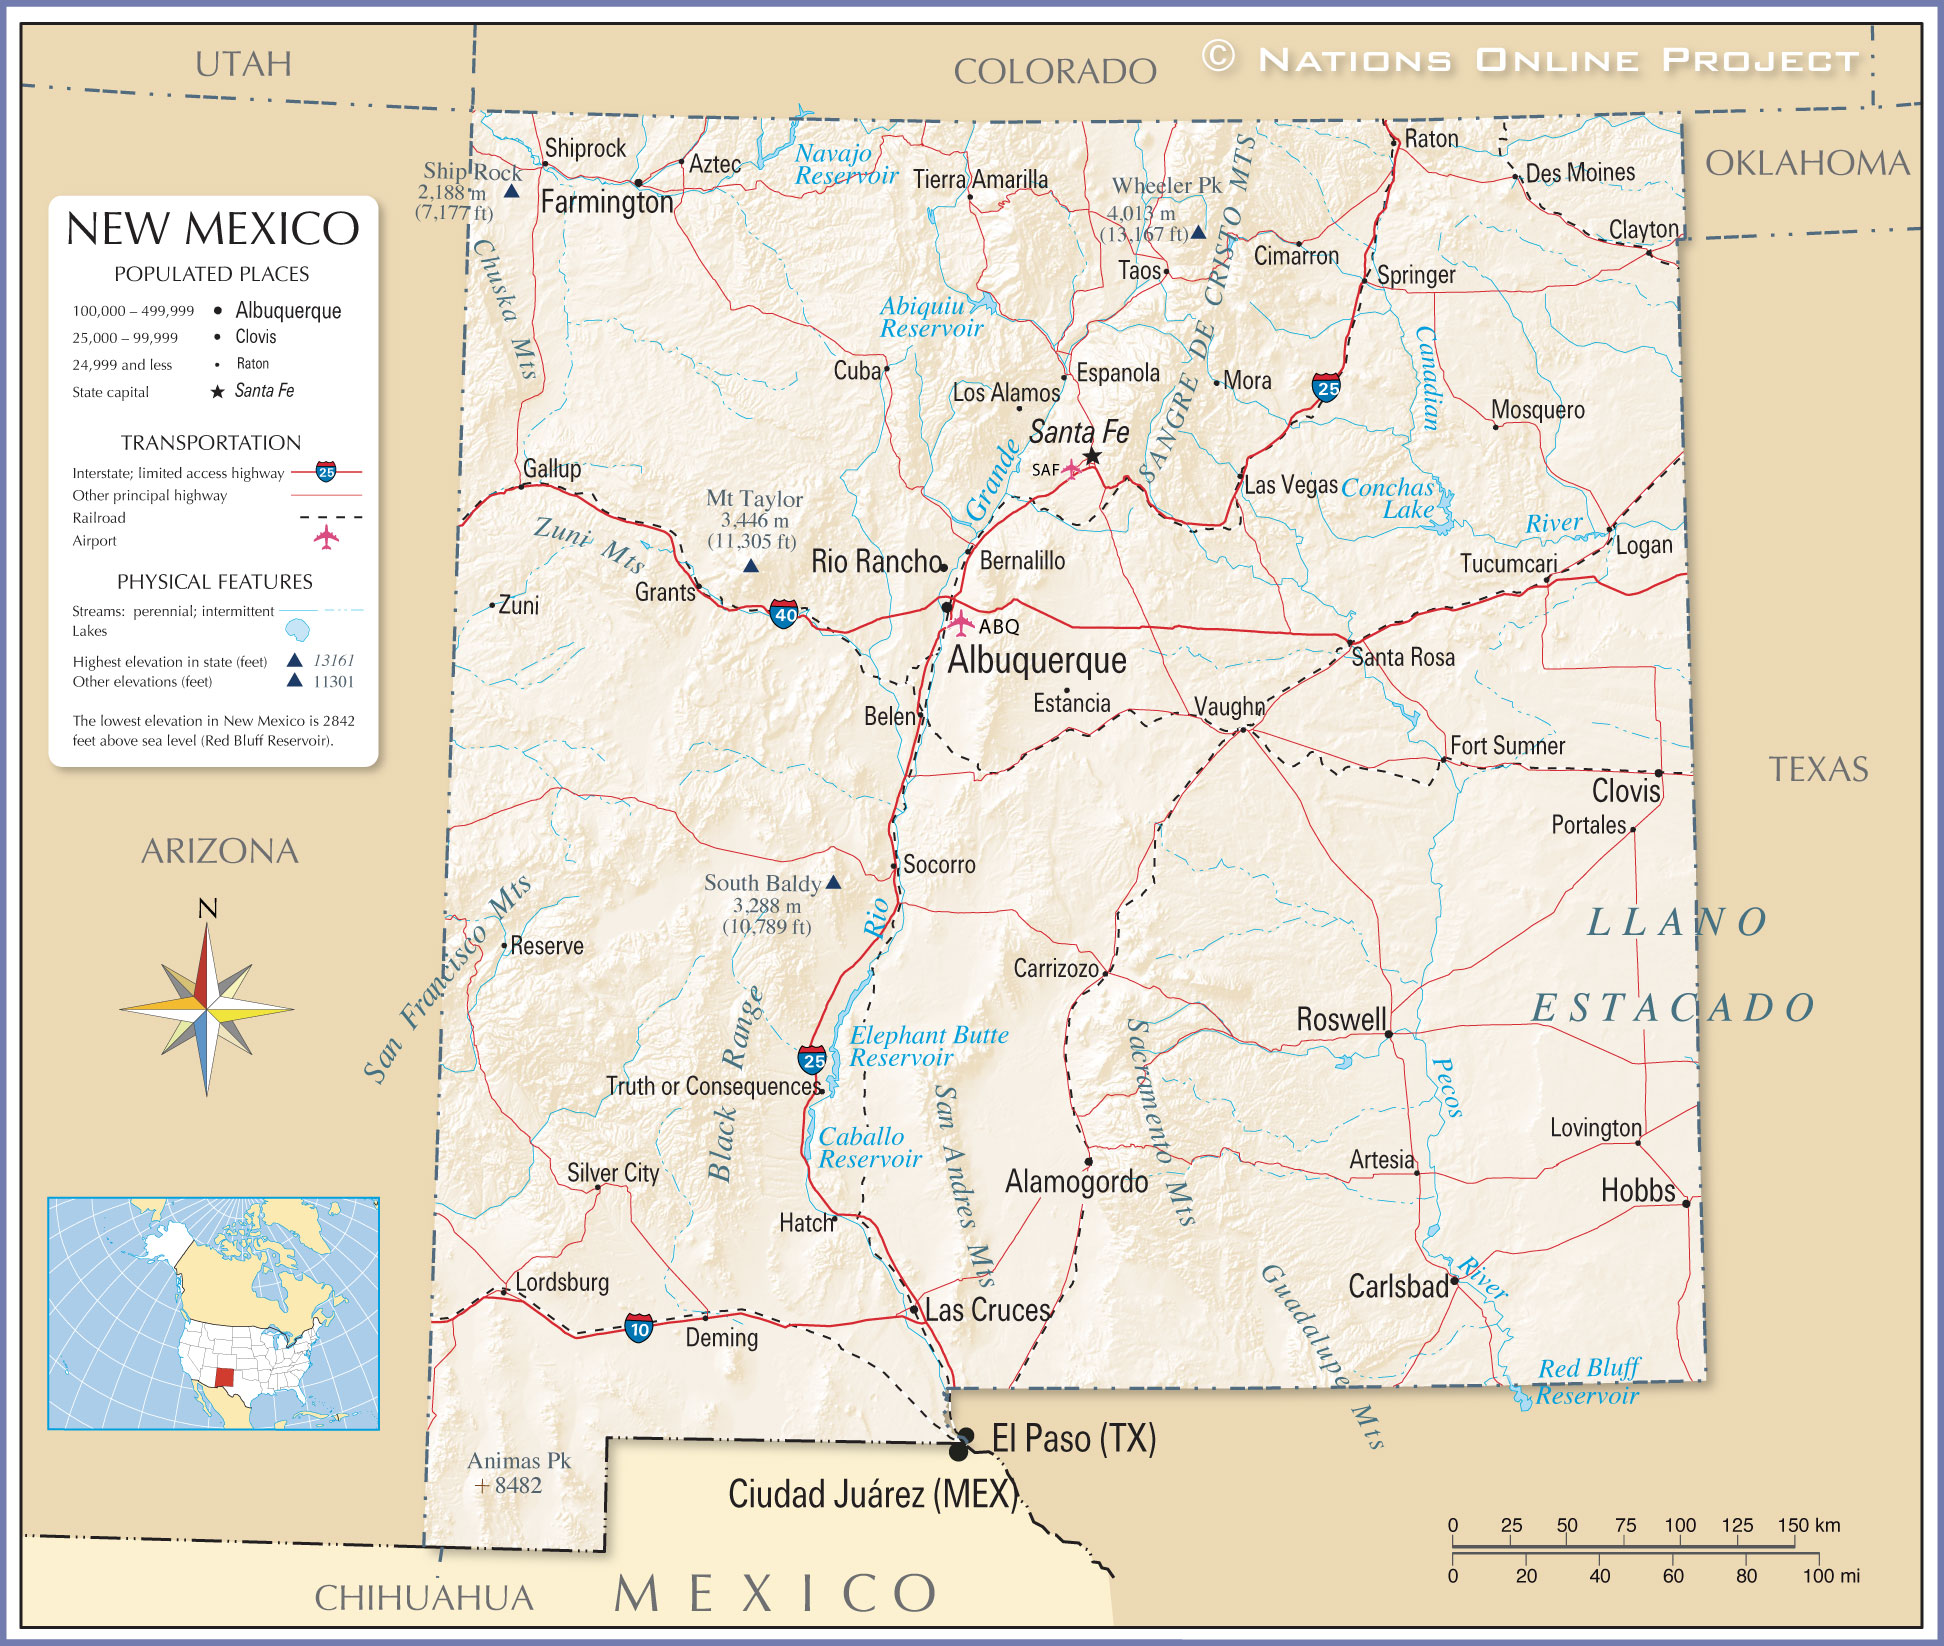 Reference Map Of New Mexico USA Nations Online Project - Maps of new mexico